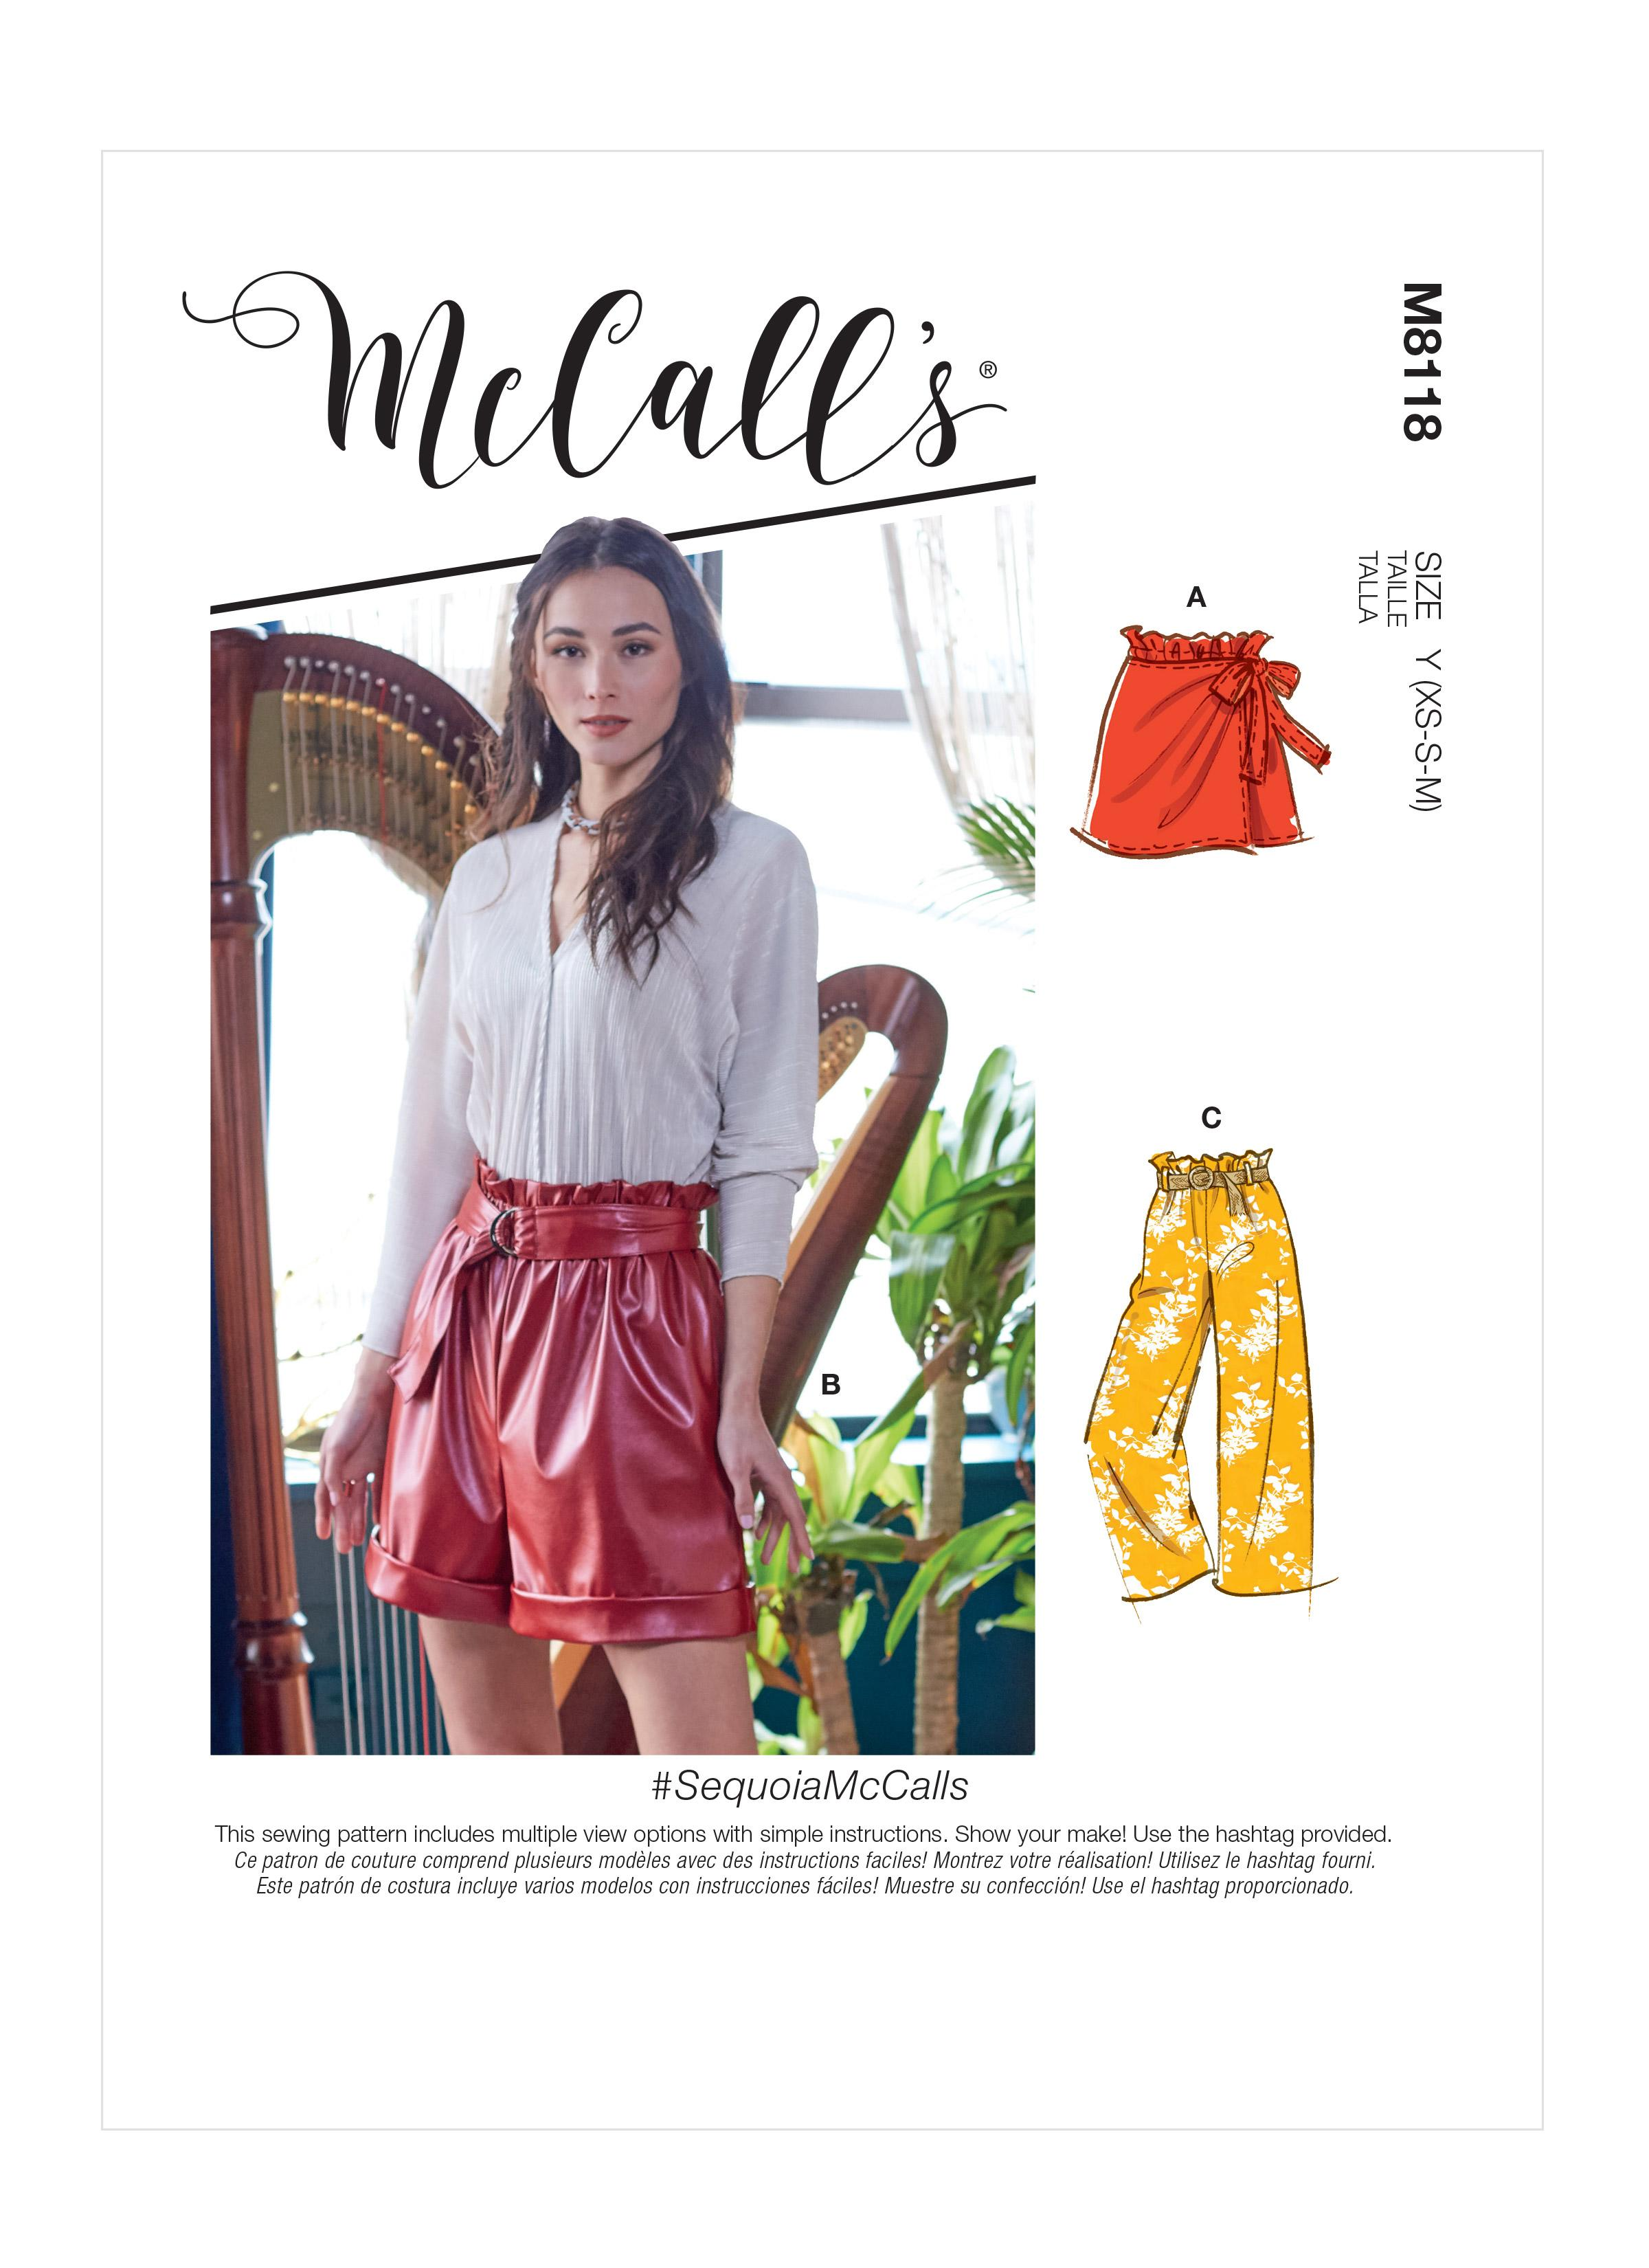 McCalls M8118 #SequoiaMcCalls - Misses' Shorts, Pants & Belt